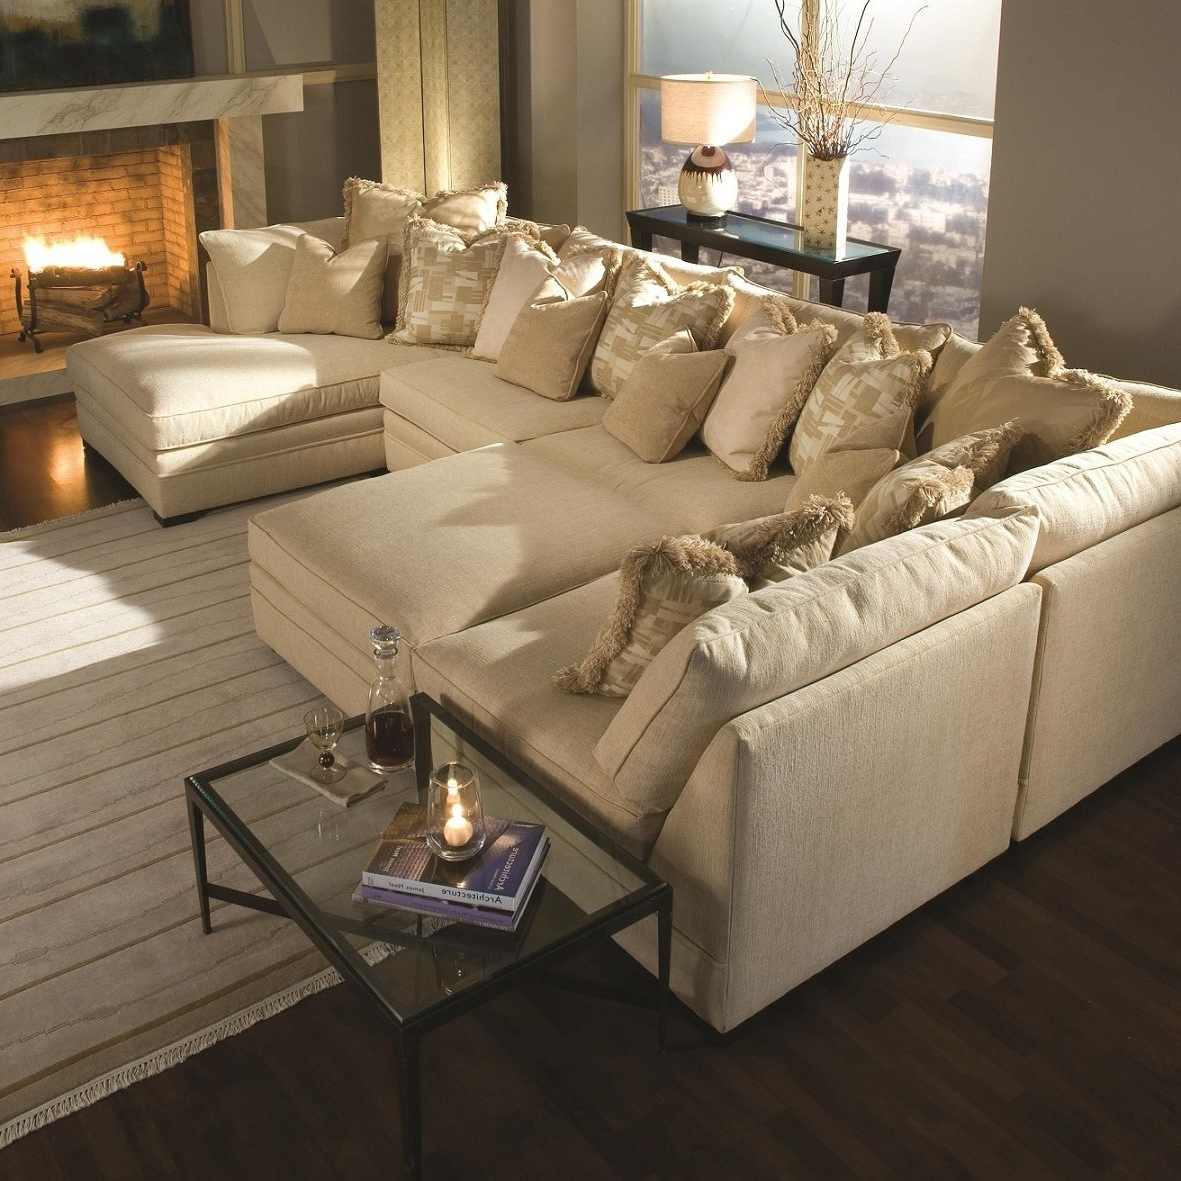 Favorite Cool Unique Extra Large Sectional Sofas With Chaise 24 For Your Intended For Extra Large Sectional Sofas (View 8 of 20)